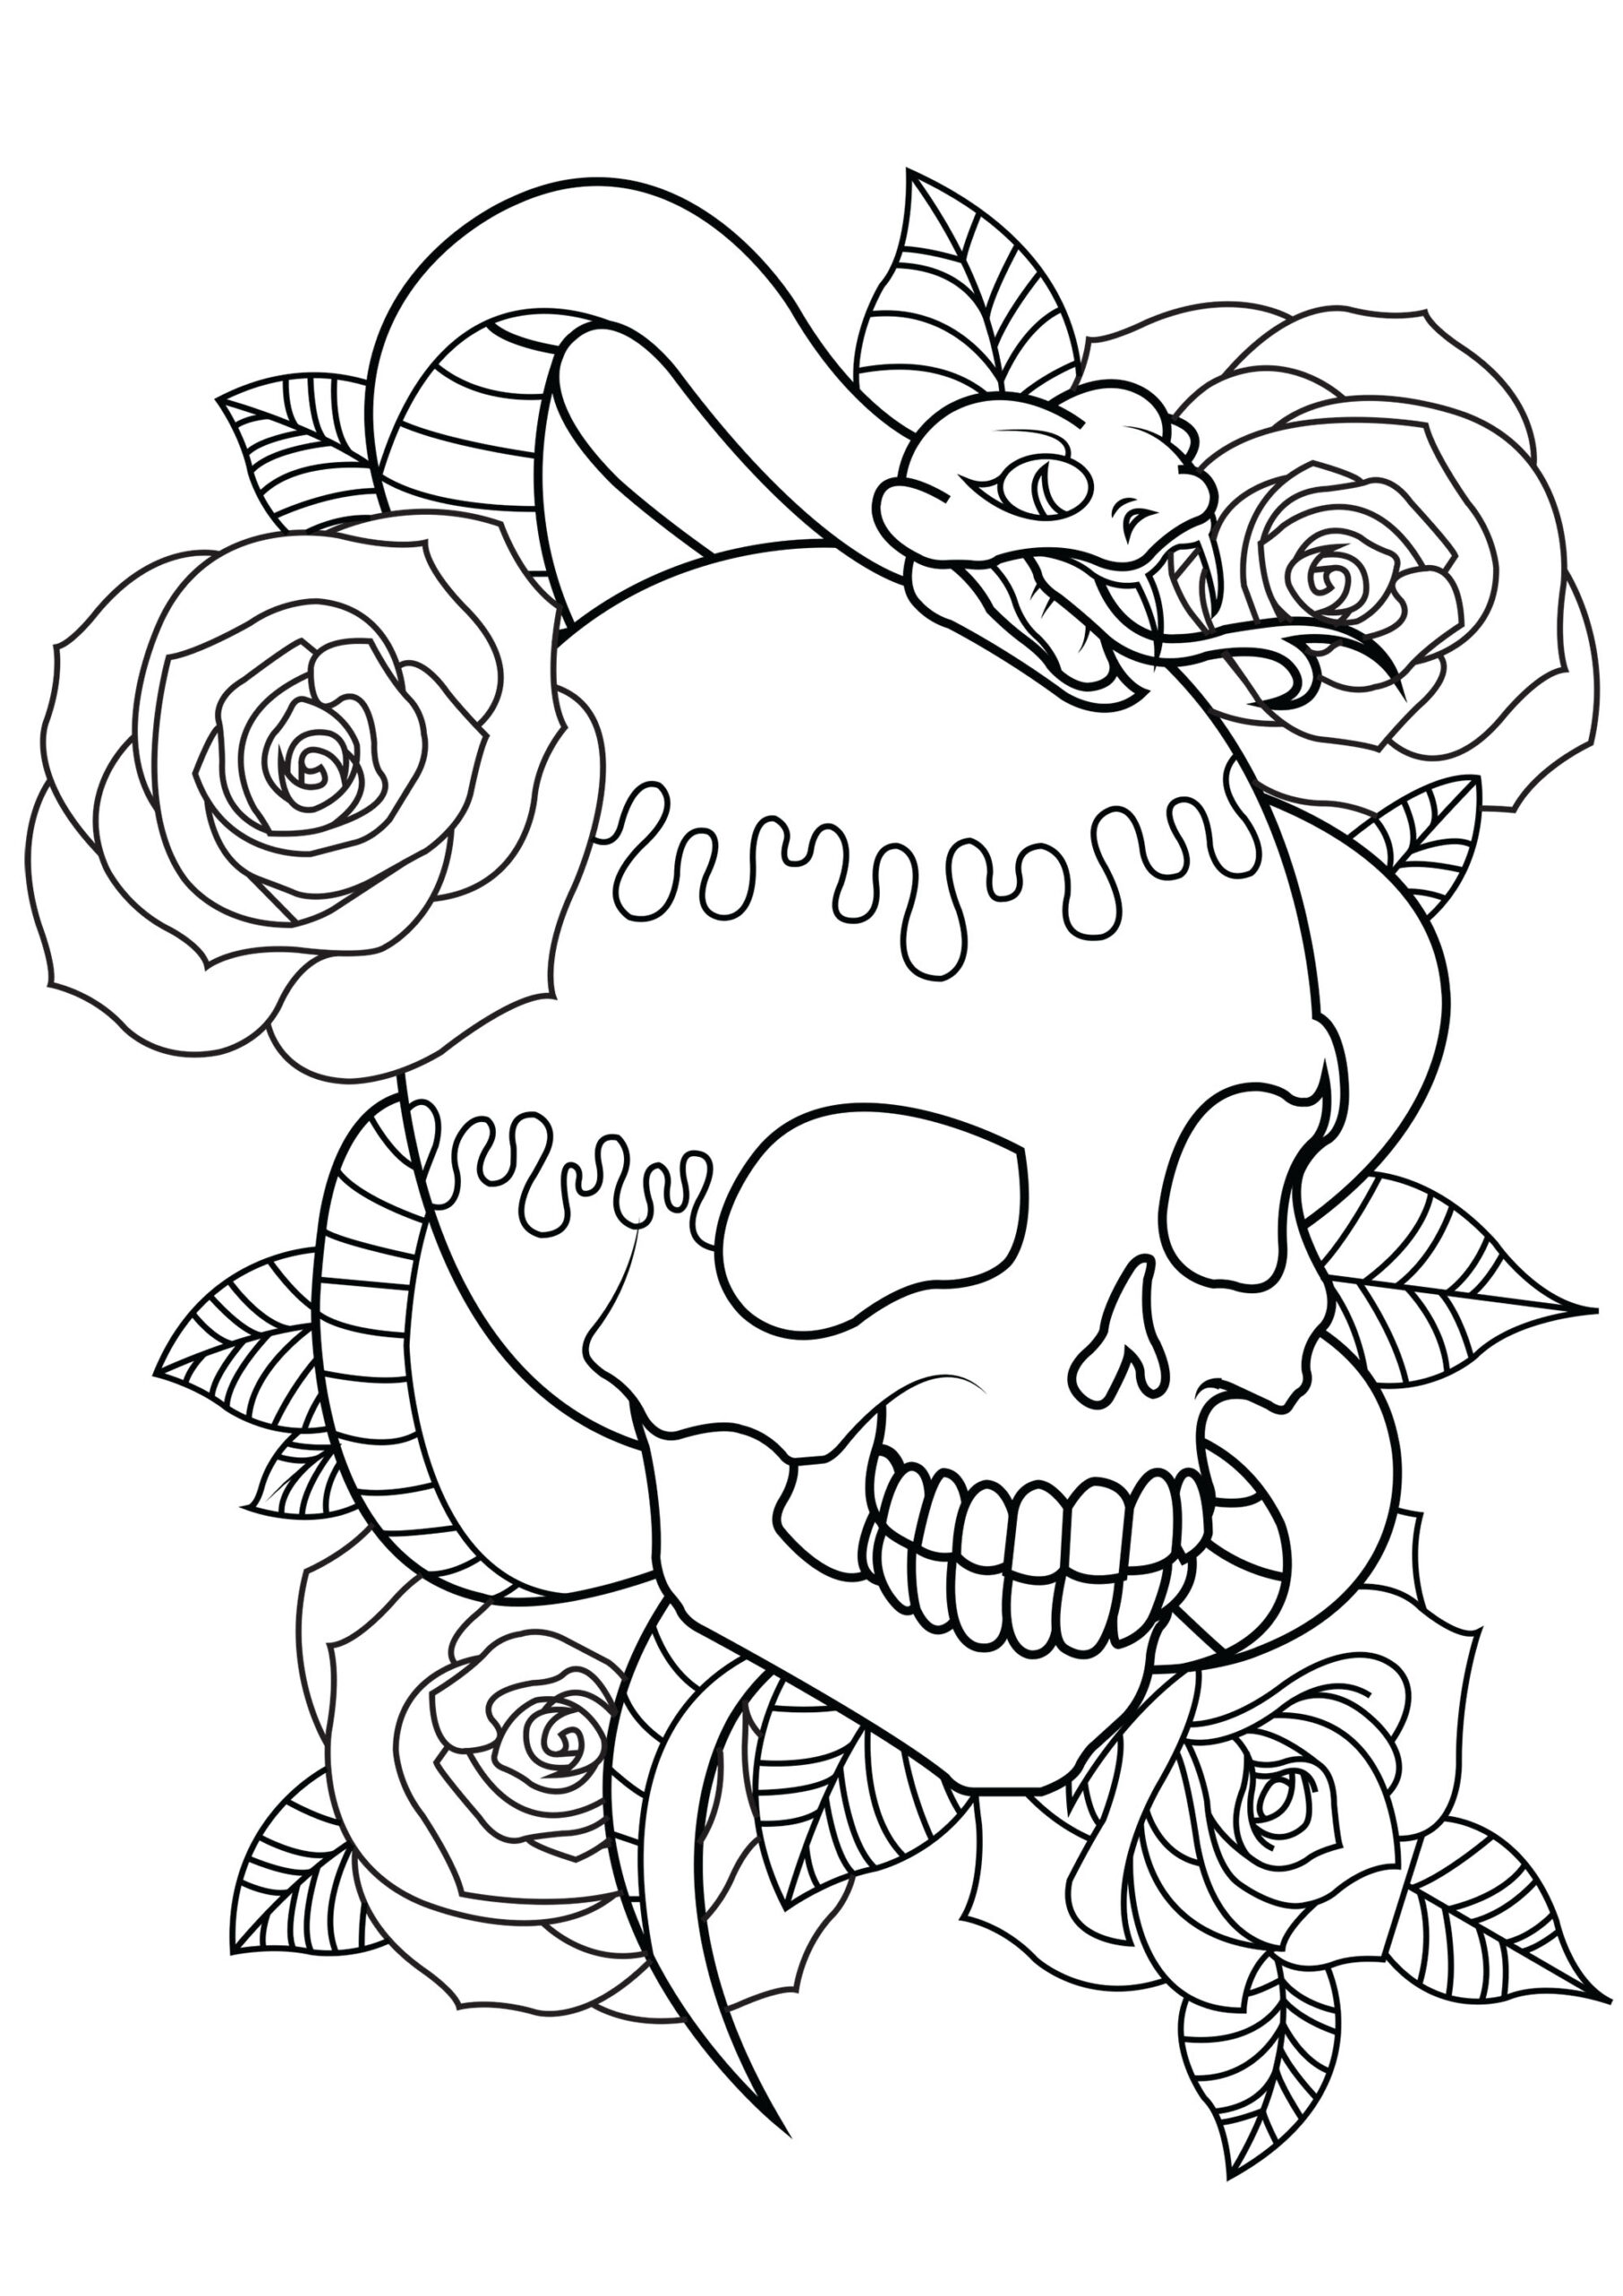 skull coloring for adults tattoo snake easter arts and crafts card paper flowers acrostix coloring pages Skull Coloring Page